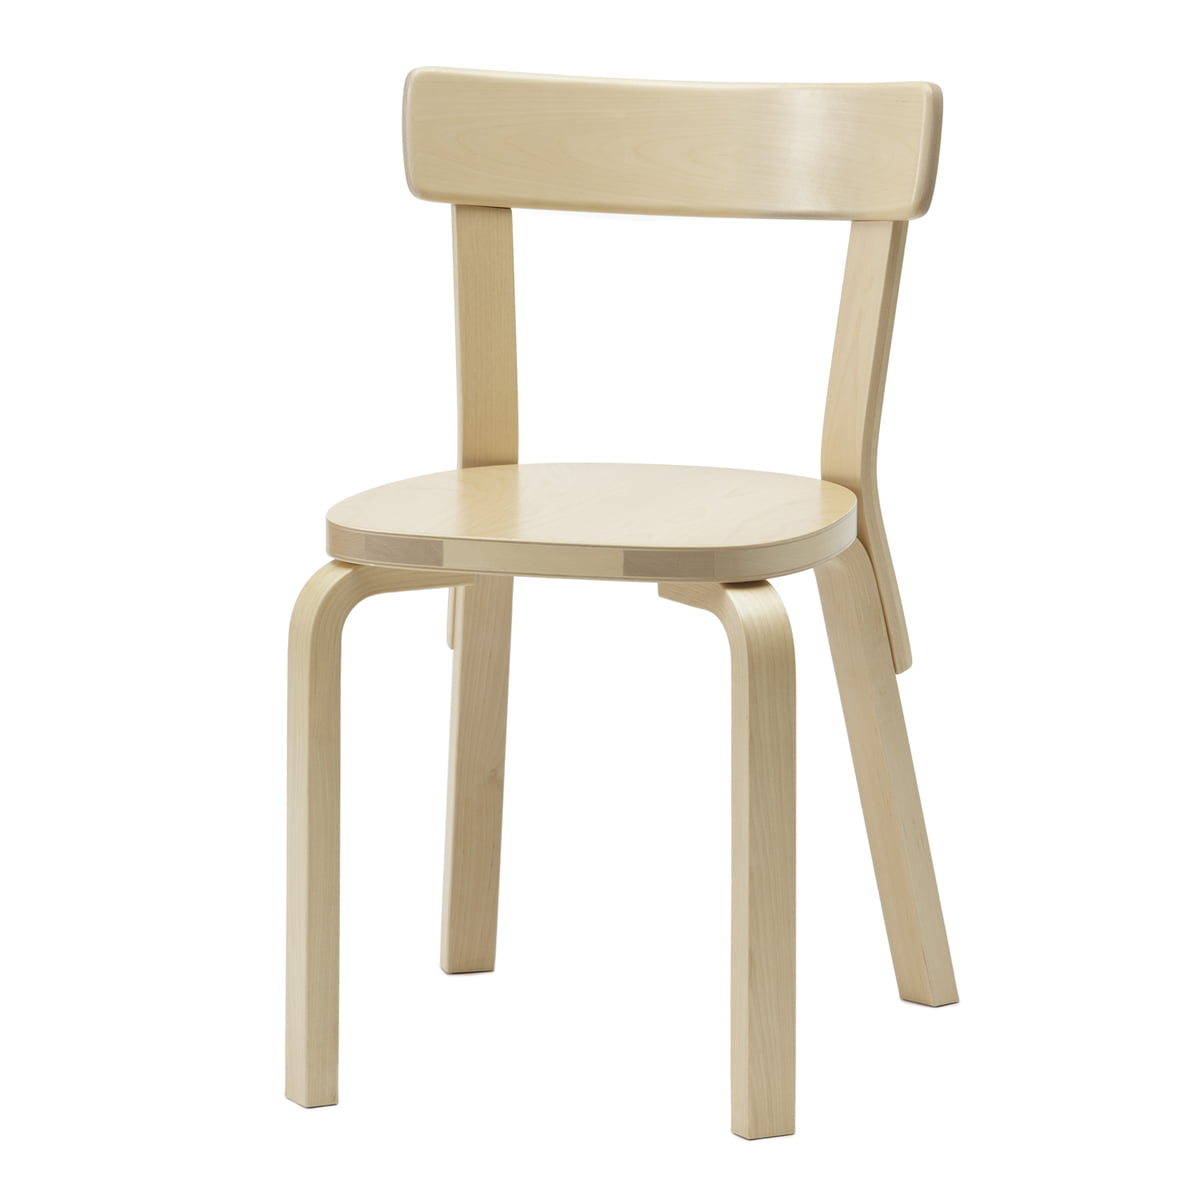 Artek chair 69 birch wood without cushion